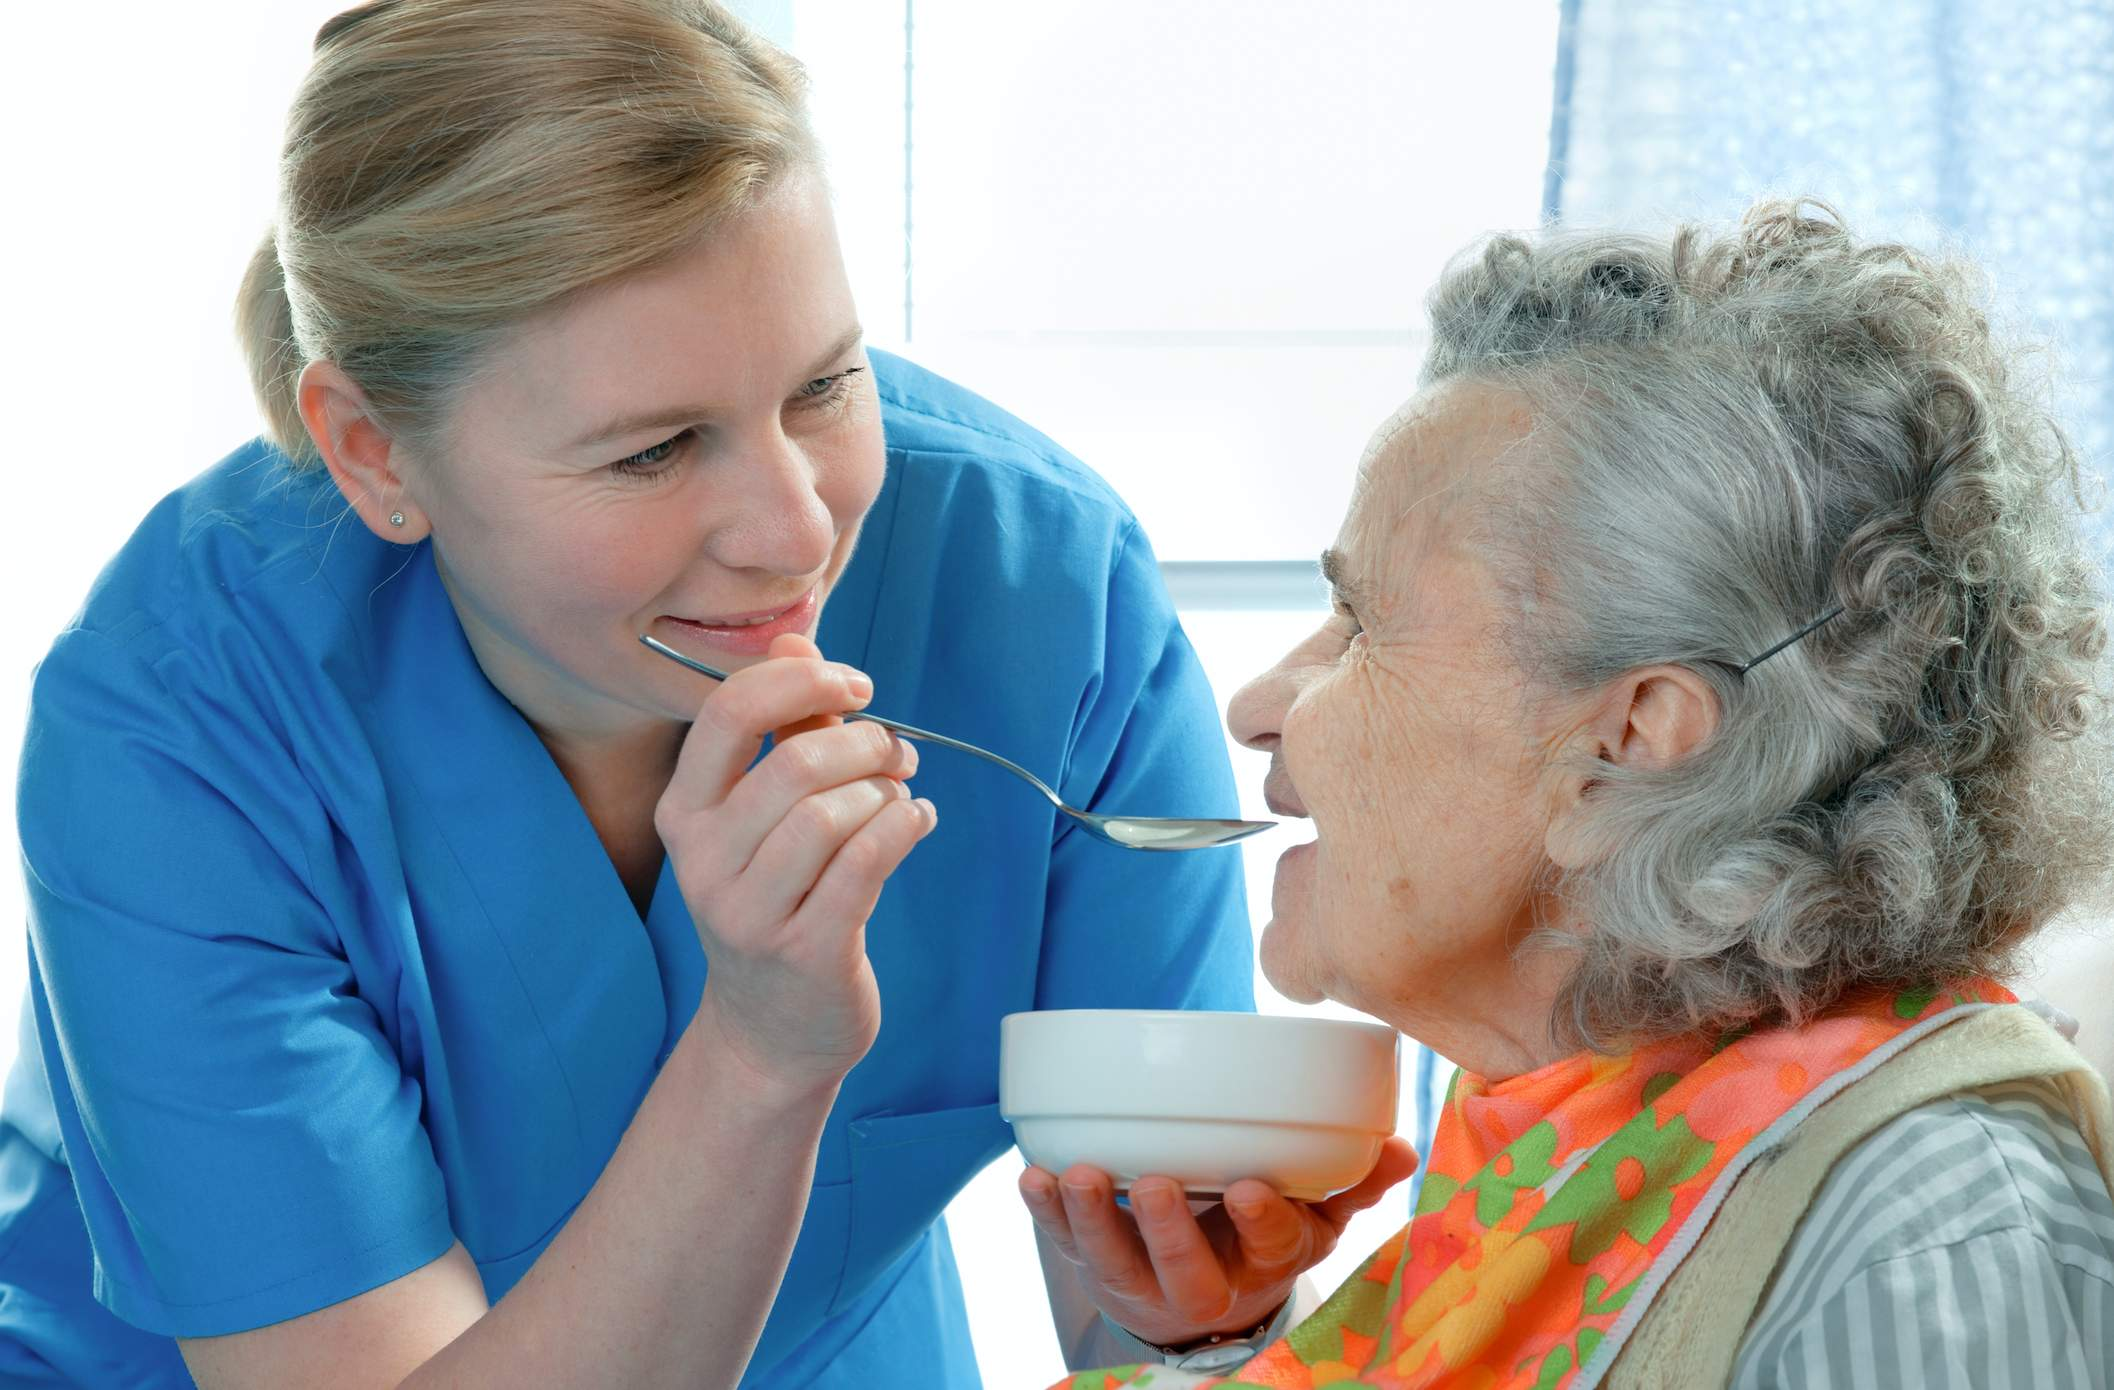 A nurse feeds soup to an elderly patient